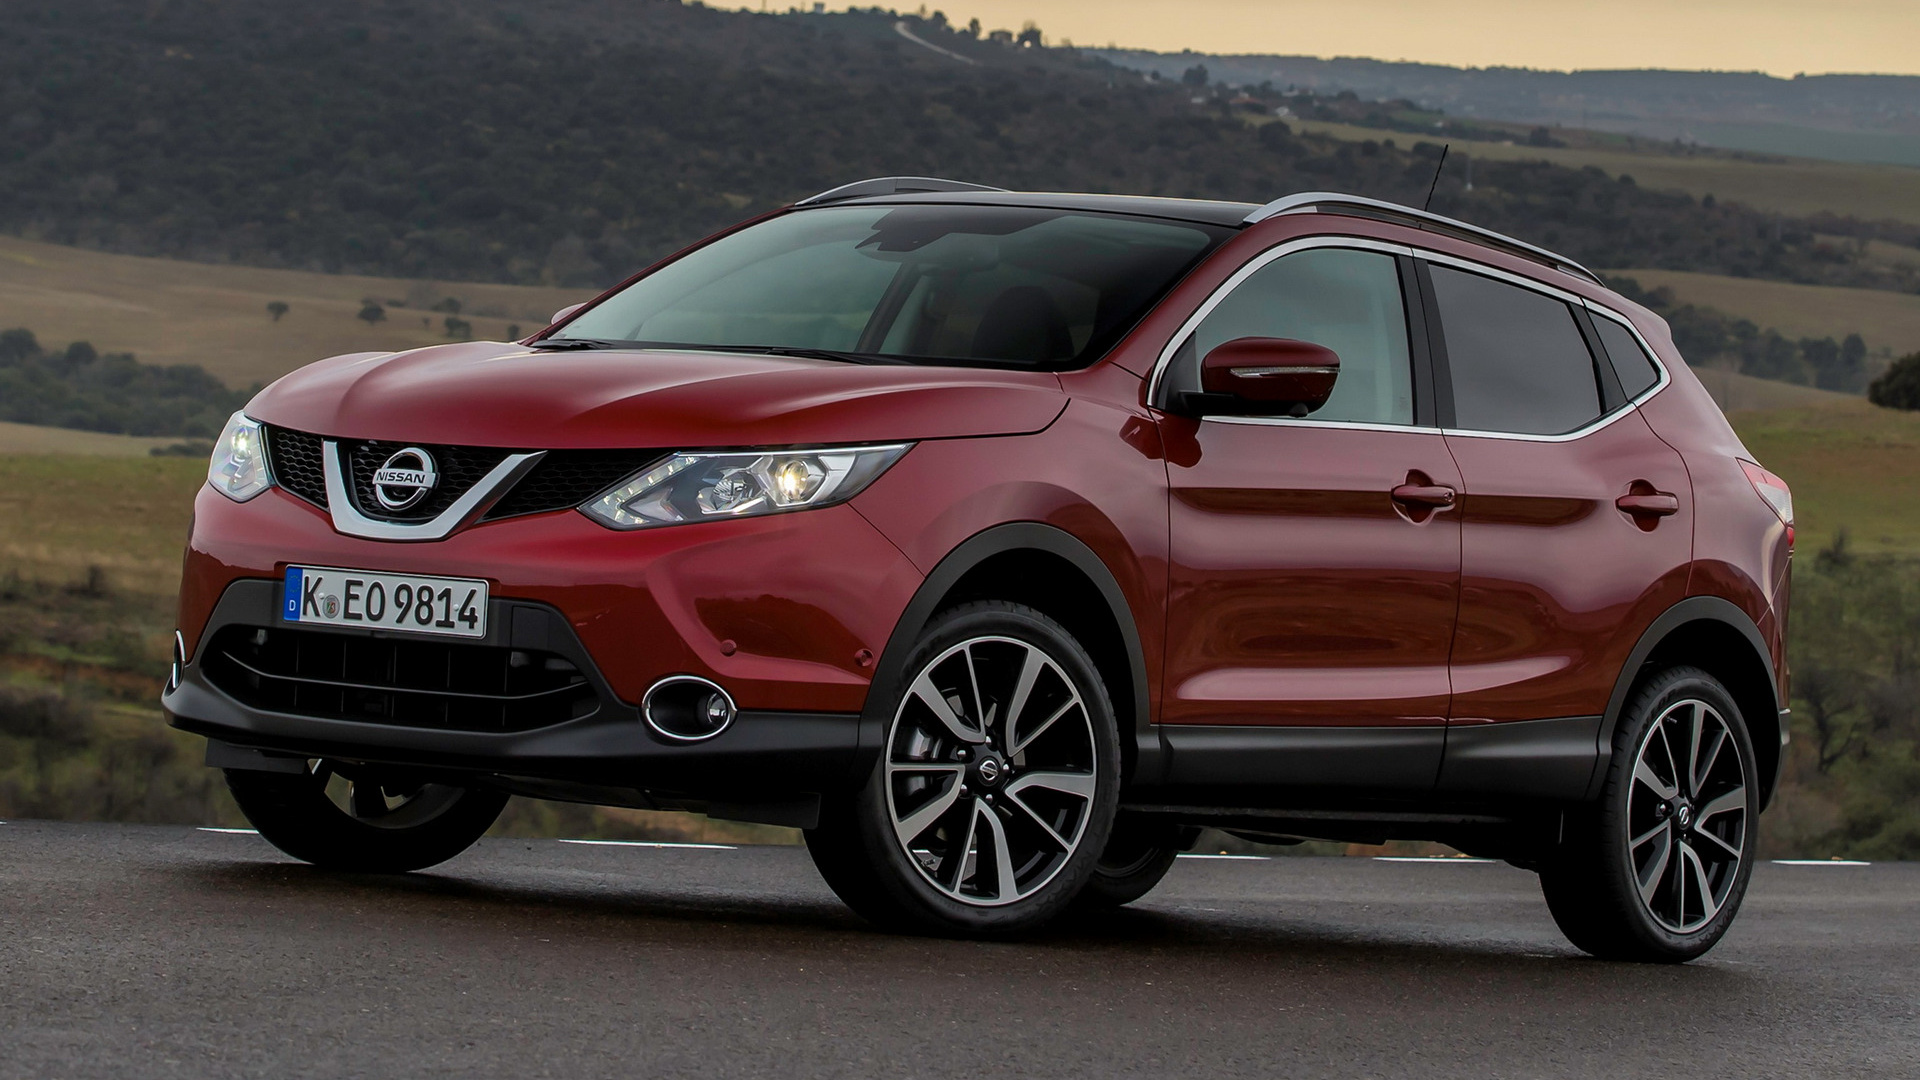 2014 Nissan Qashqai Wallpapers And Hd Images Car Pixel